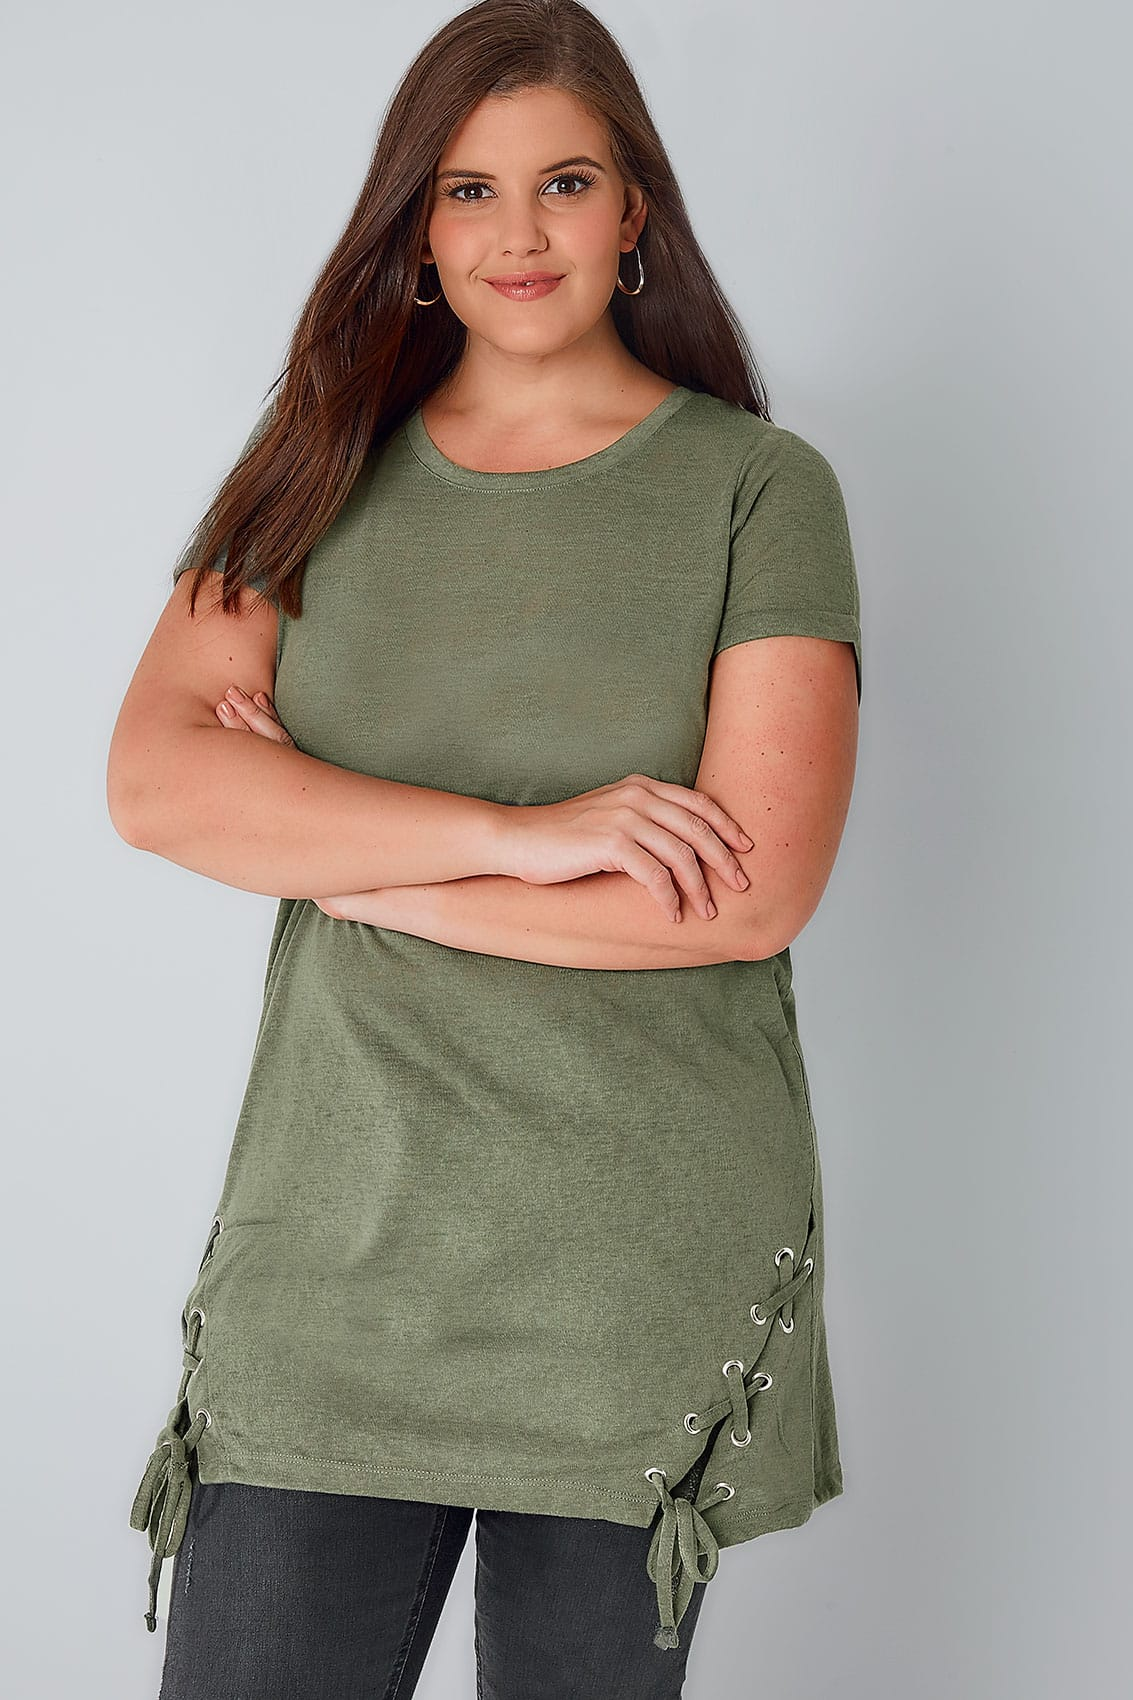 khaki fine knit top with lace up hem plus size 16 to 36. Black Bedroom Furniture Sets. Home Design Ideas